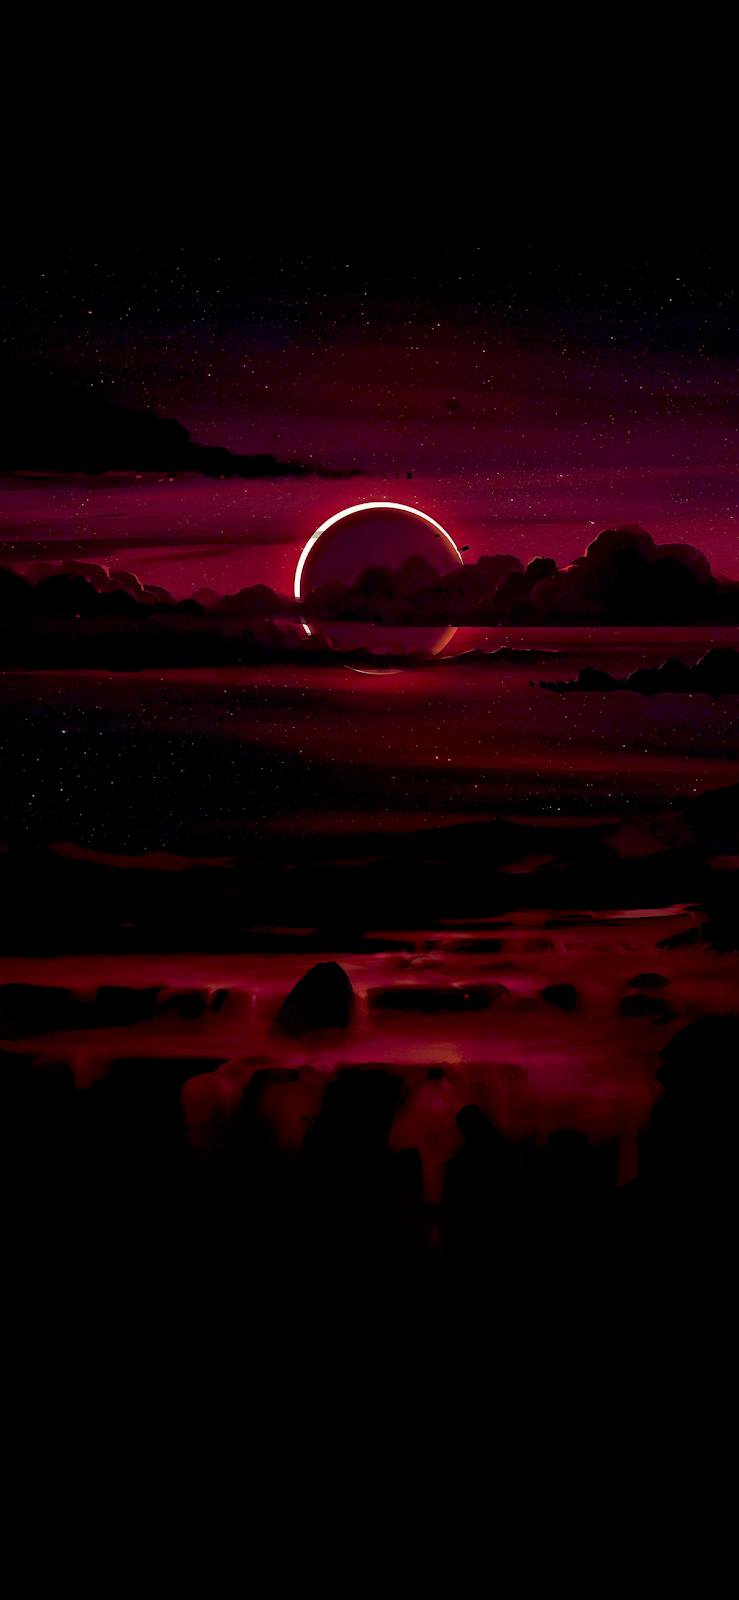 Eclipse #darkwallpaperiphone Eclipse #wallpaper #iphone #android #background #followme